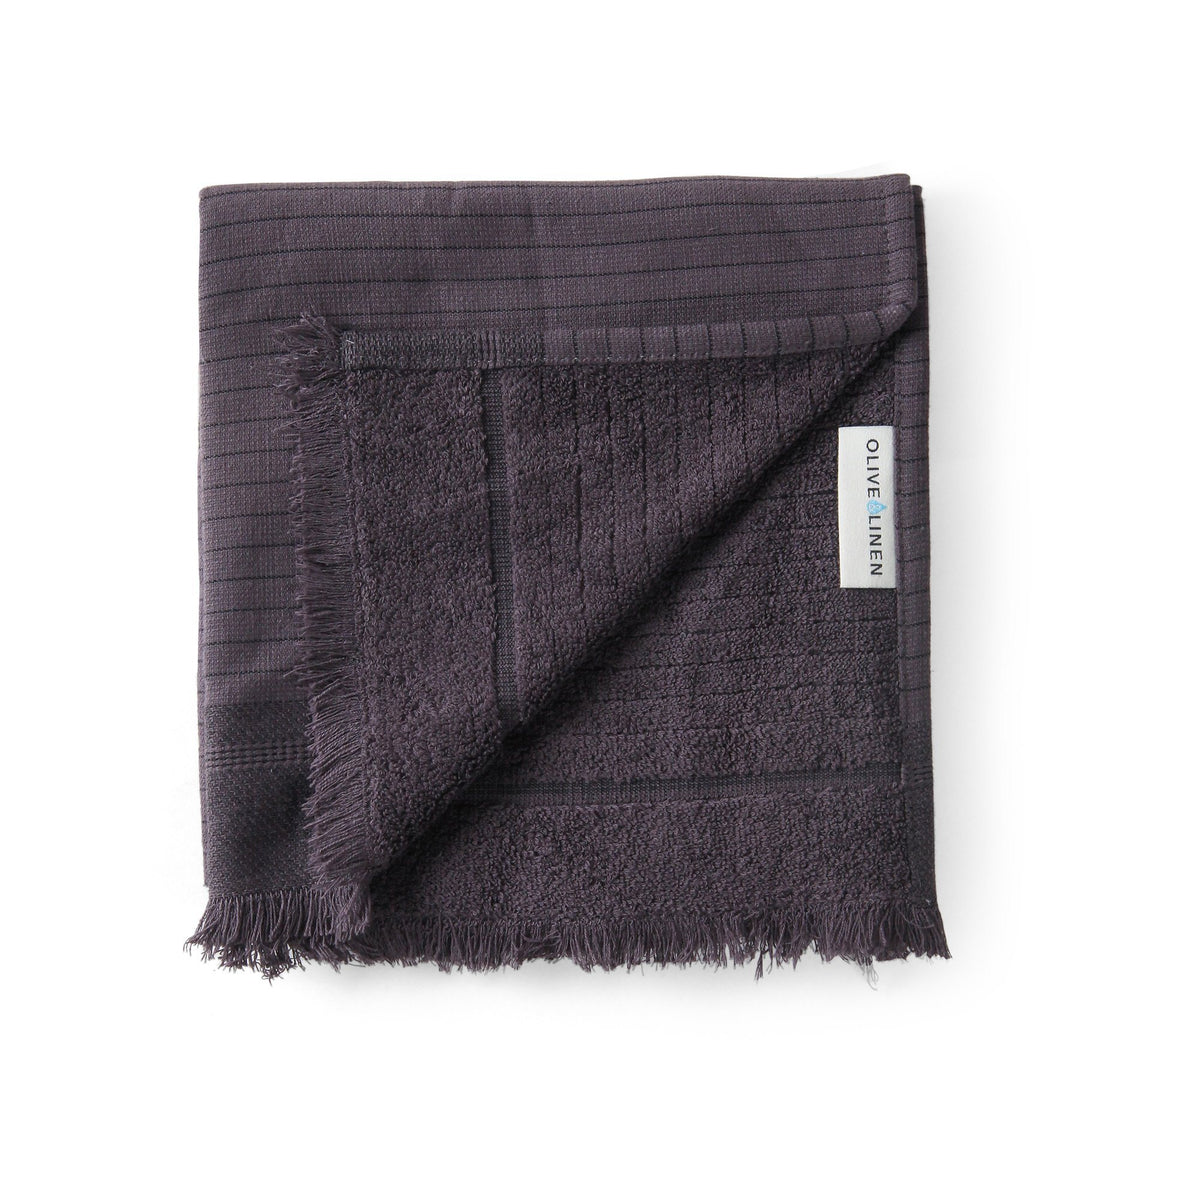 Bliss Turkish Towel Bundle